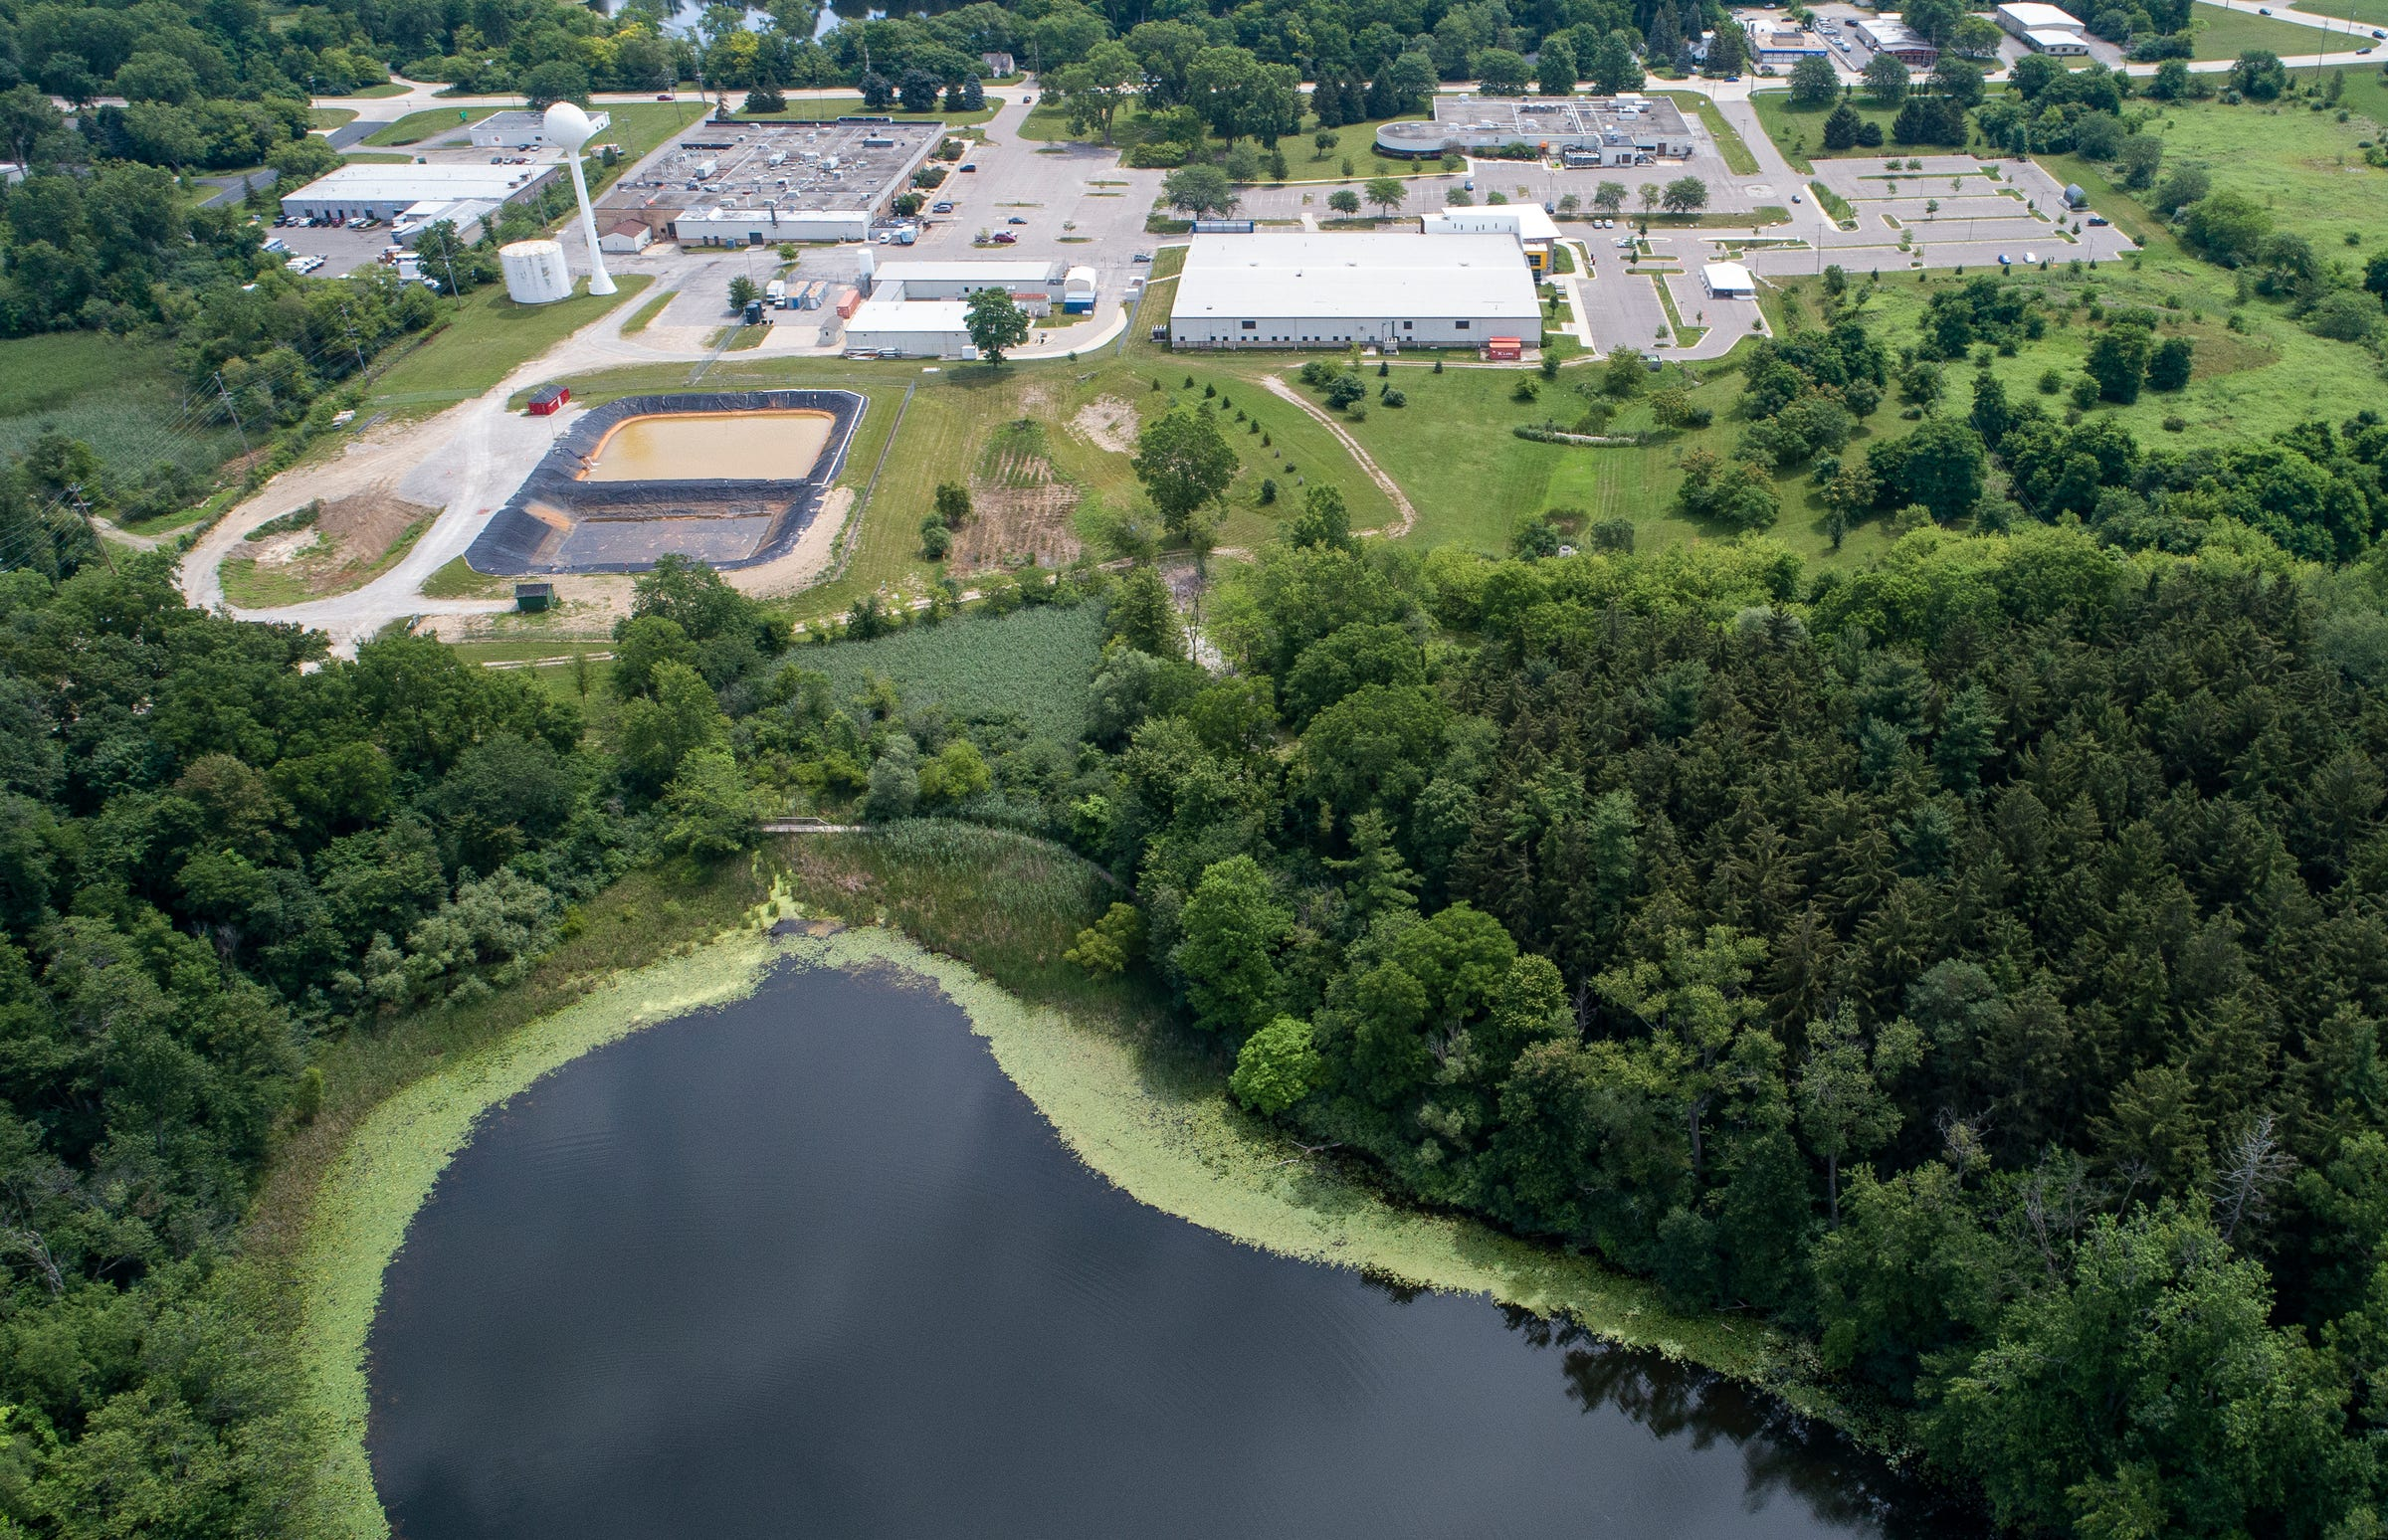 Michigan's groundwater problem: Ann Arbor's 4-mile-long dioxane plume is growing